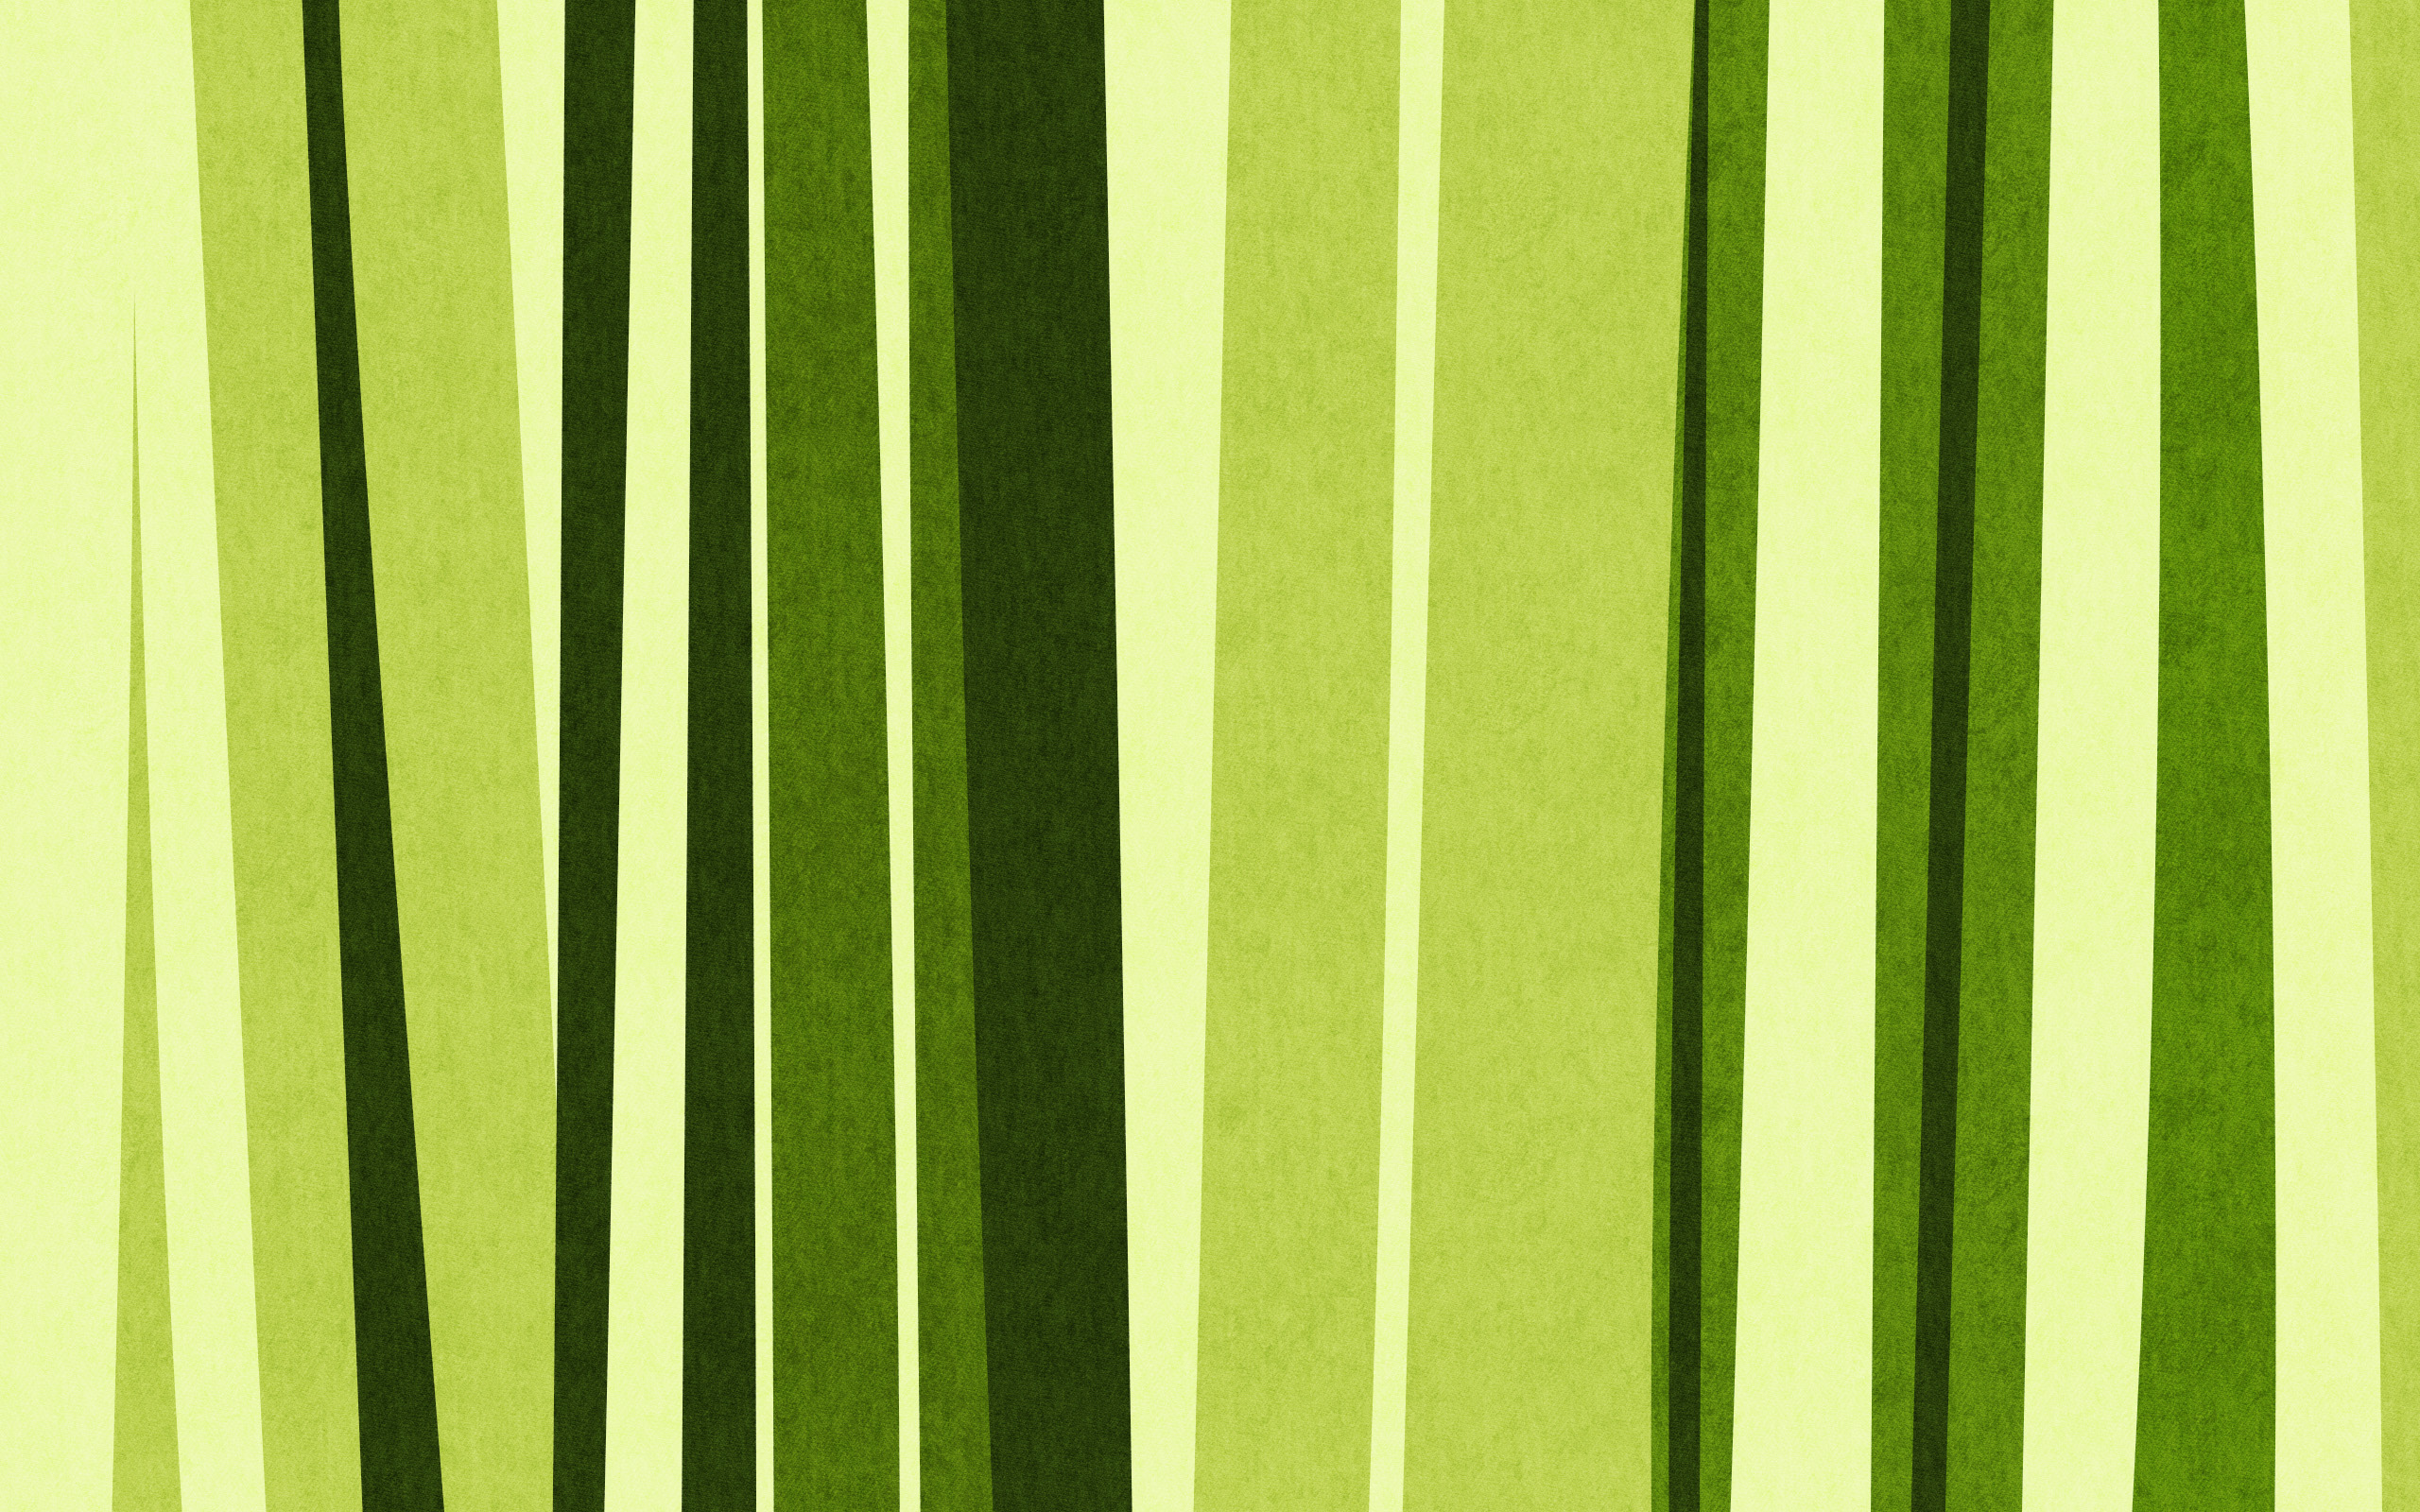 Bamboo Forest, design, digital art, art, abstract, color, green, bamboo